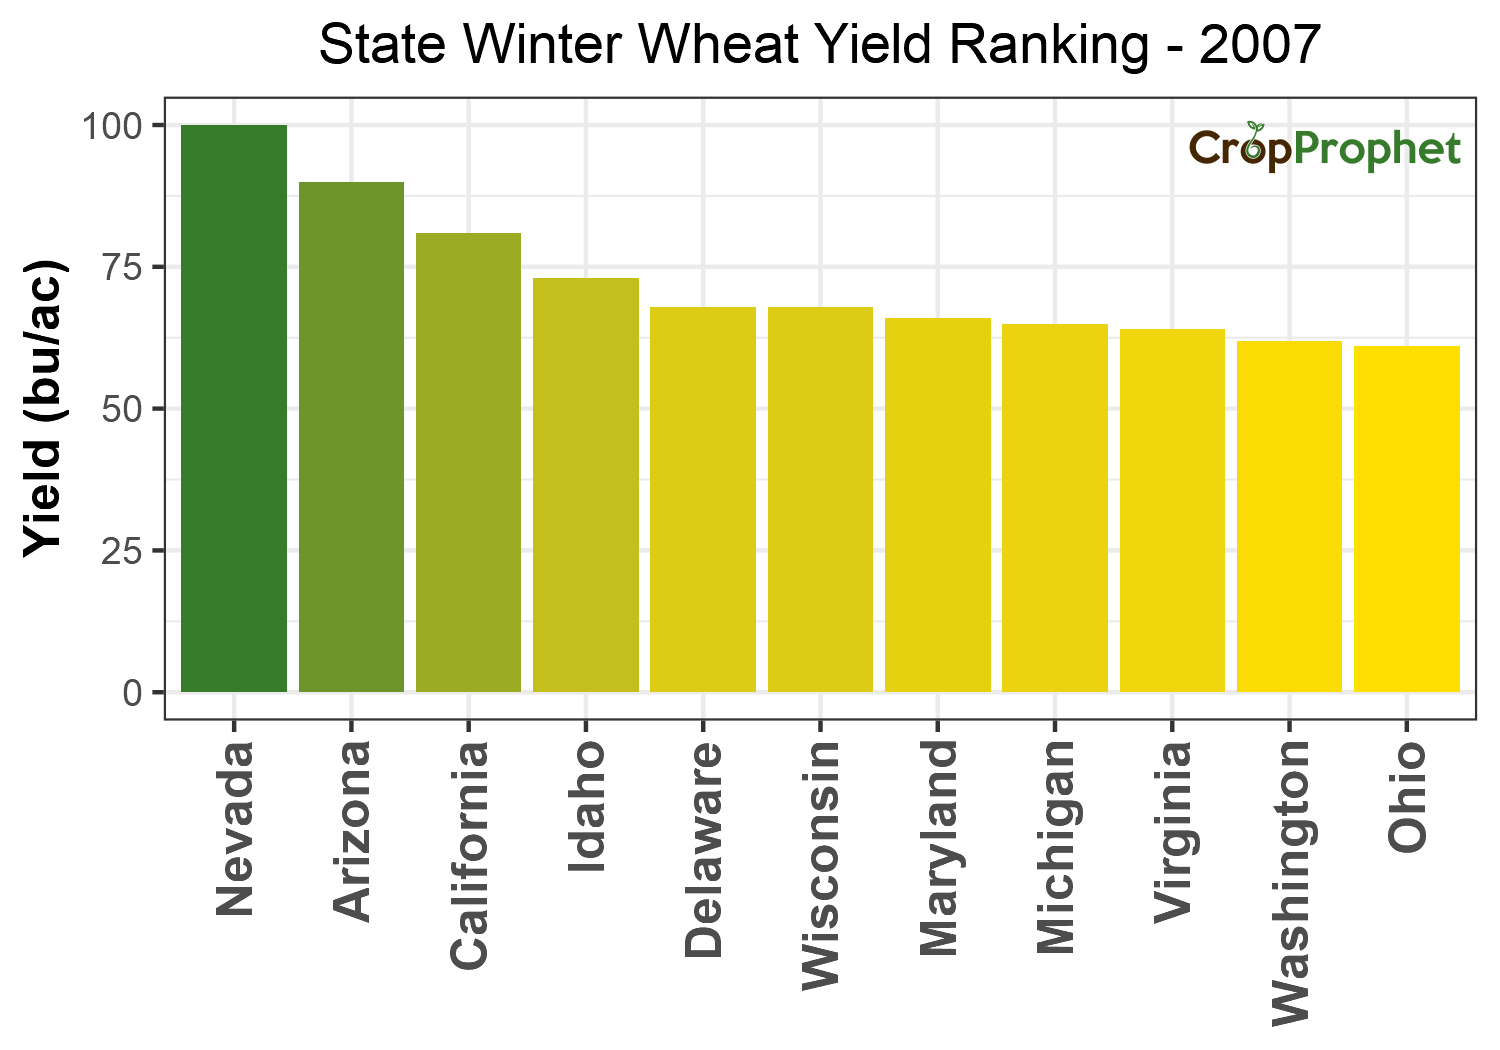 Winter wheat Production by State - 2007 Rankings